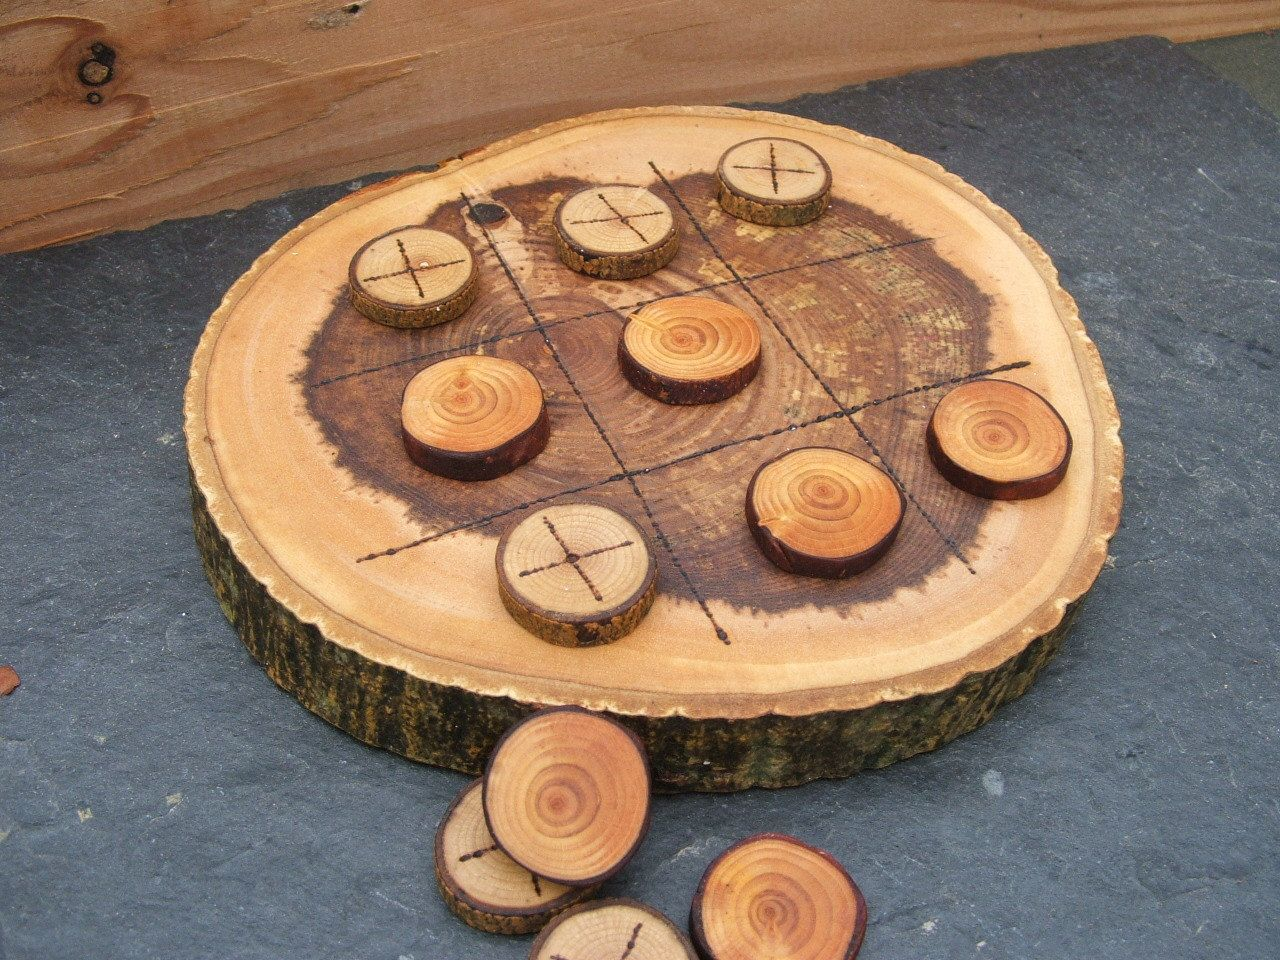 Natural rustic wooden tic tac toe or noughts and crosses game tic